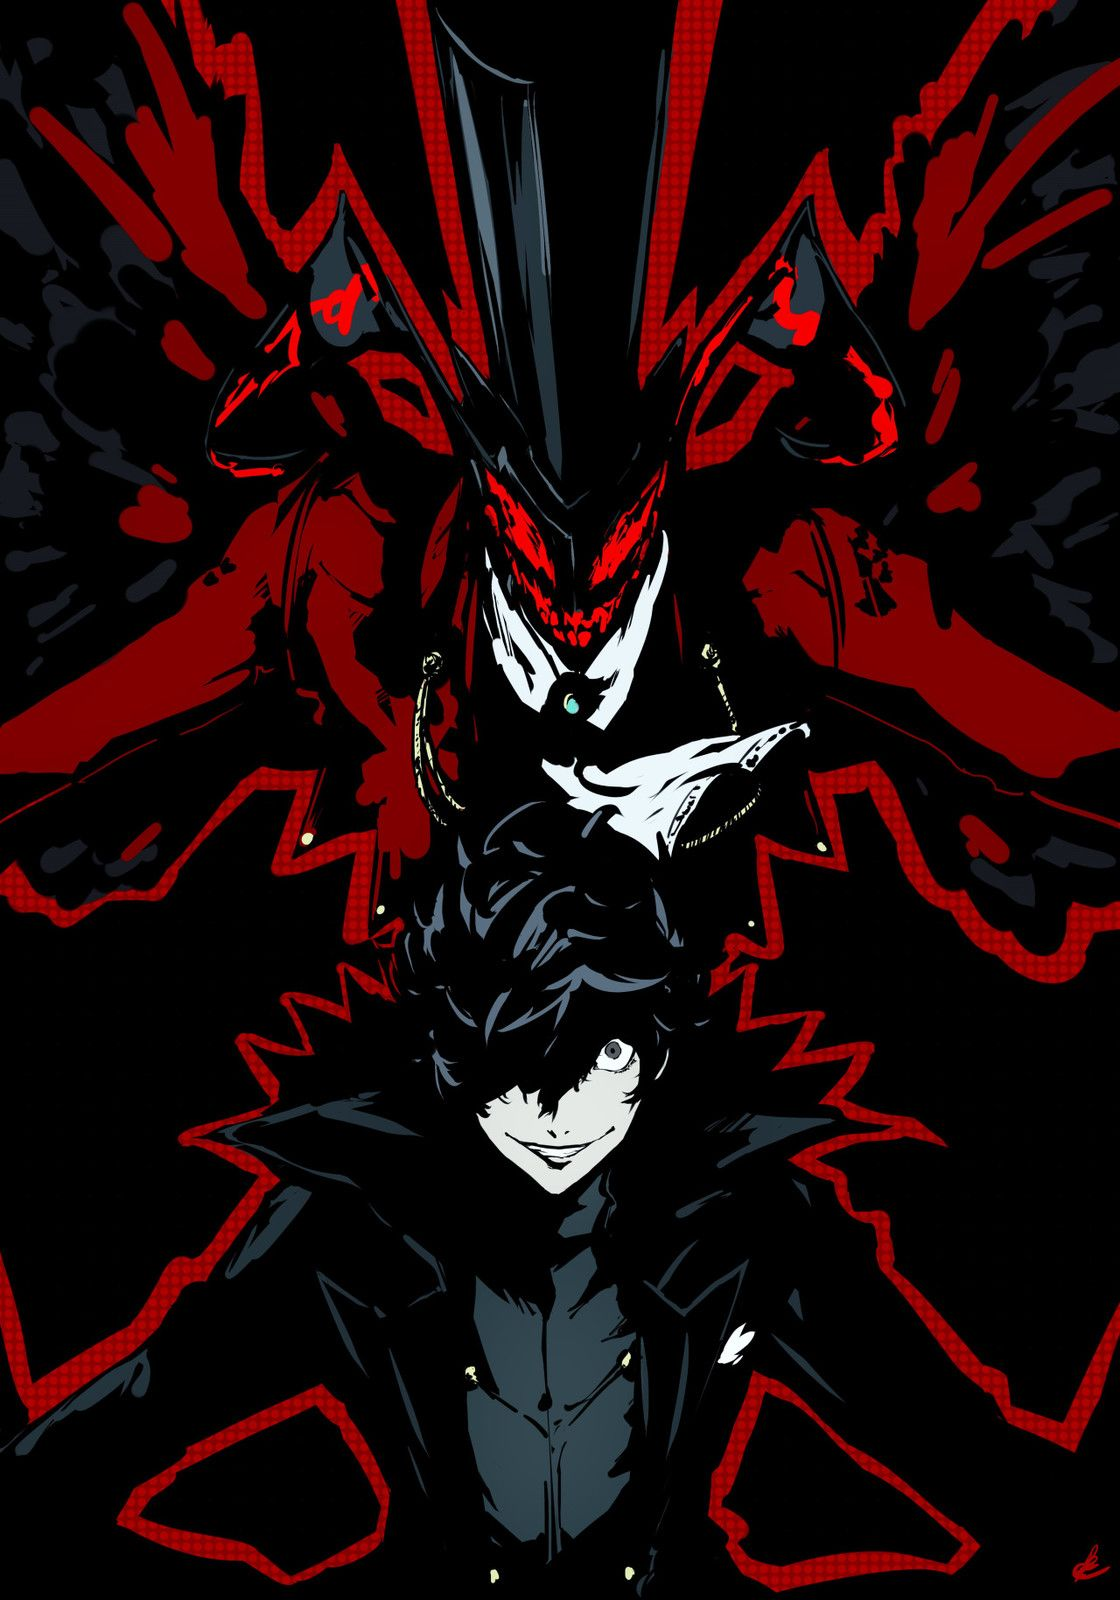 Persona 5 protagonist and Arsene illustration, Rae Ariadne